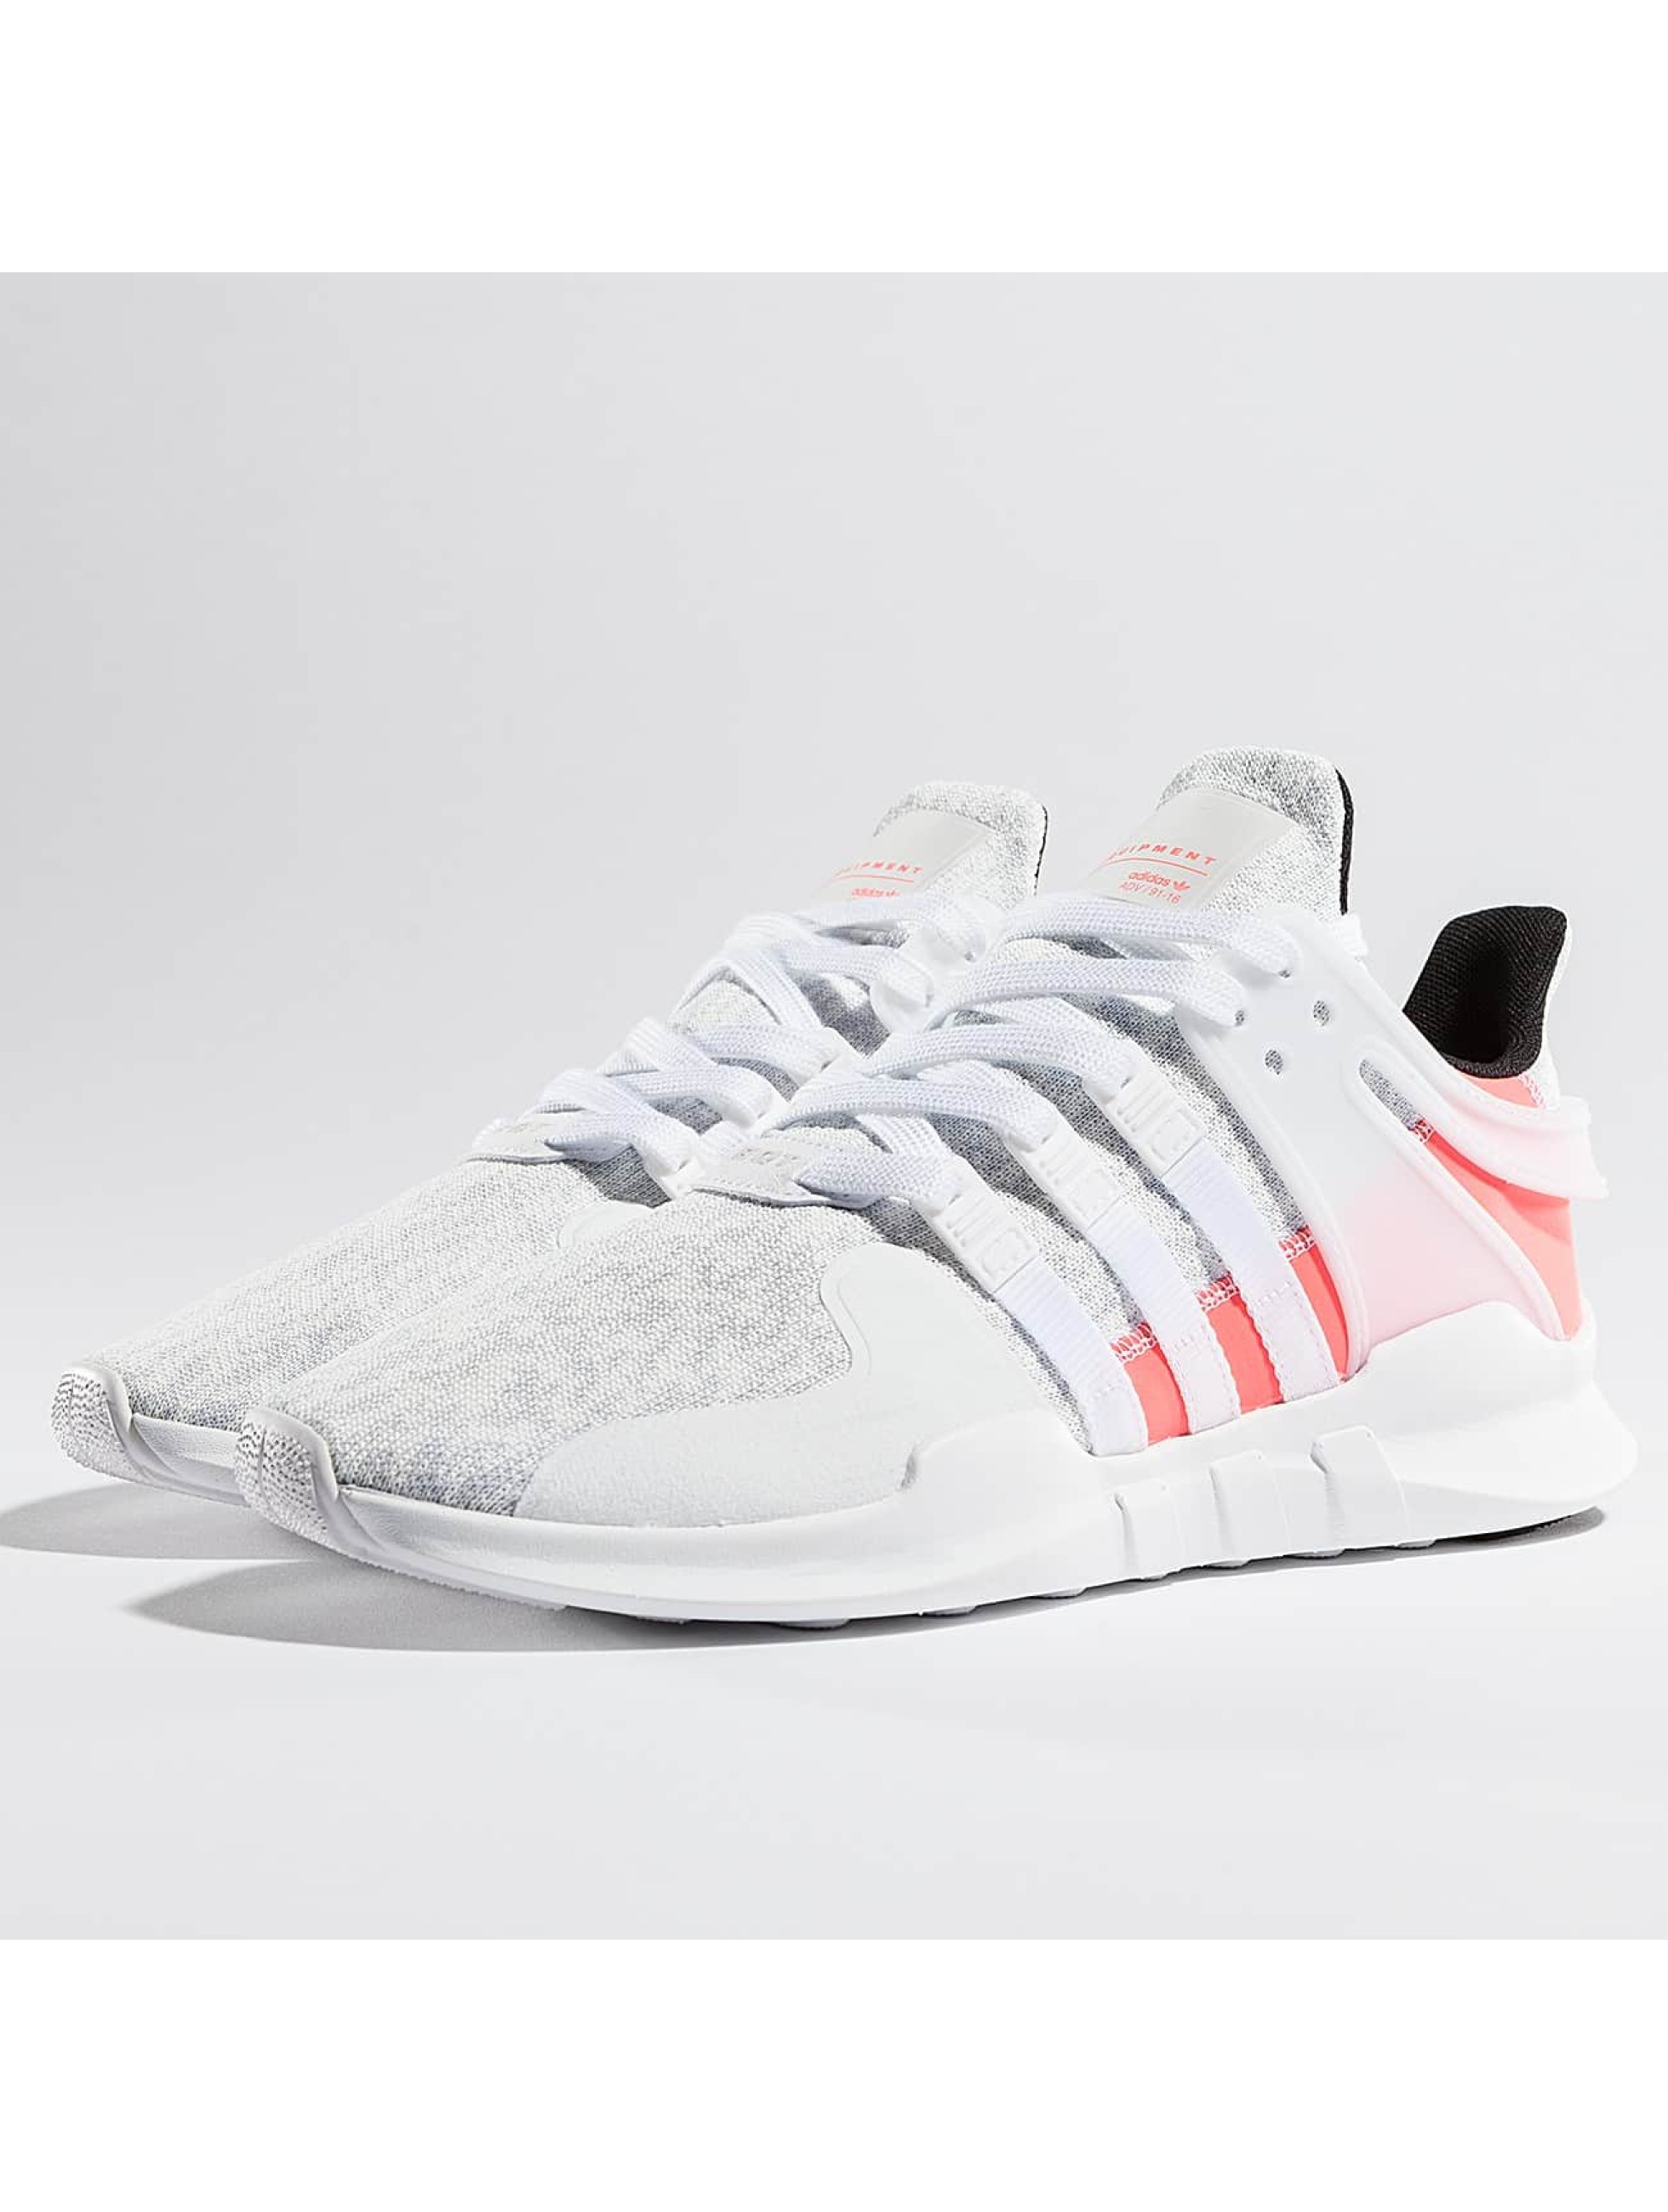 adidas damen schuhe sneaker eqt support adv ebay. Black Bedroom Furniture Sets. Home Design Ideas